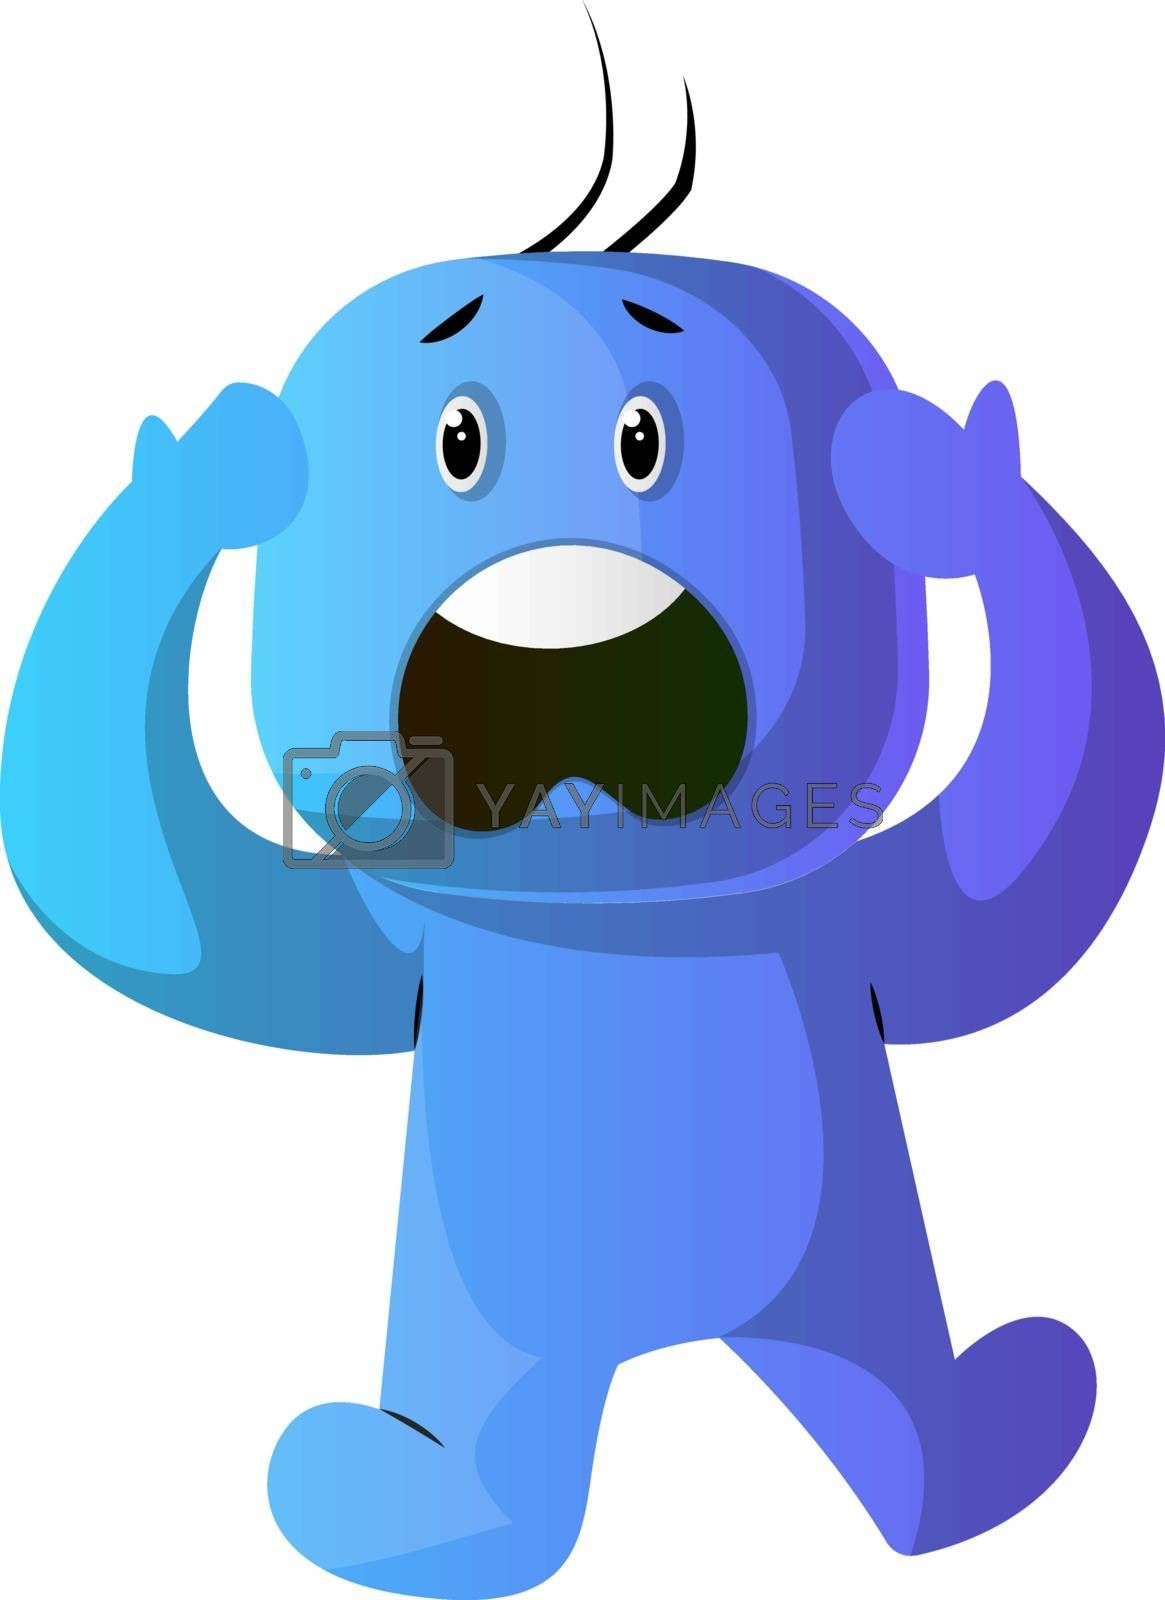 Royalty free image of Blue cartoon caracter panic illustration vector on white backgro by Morphart